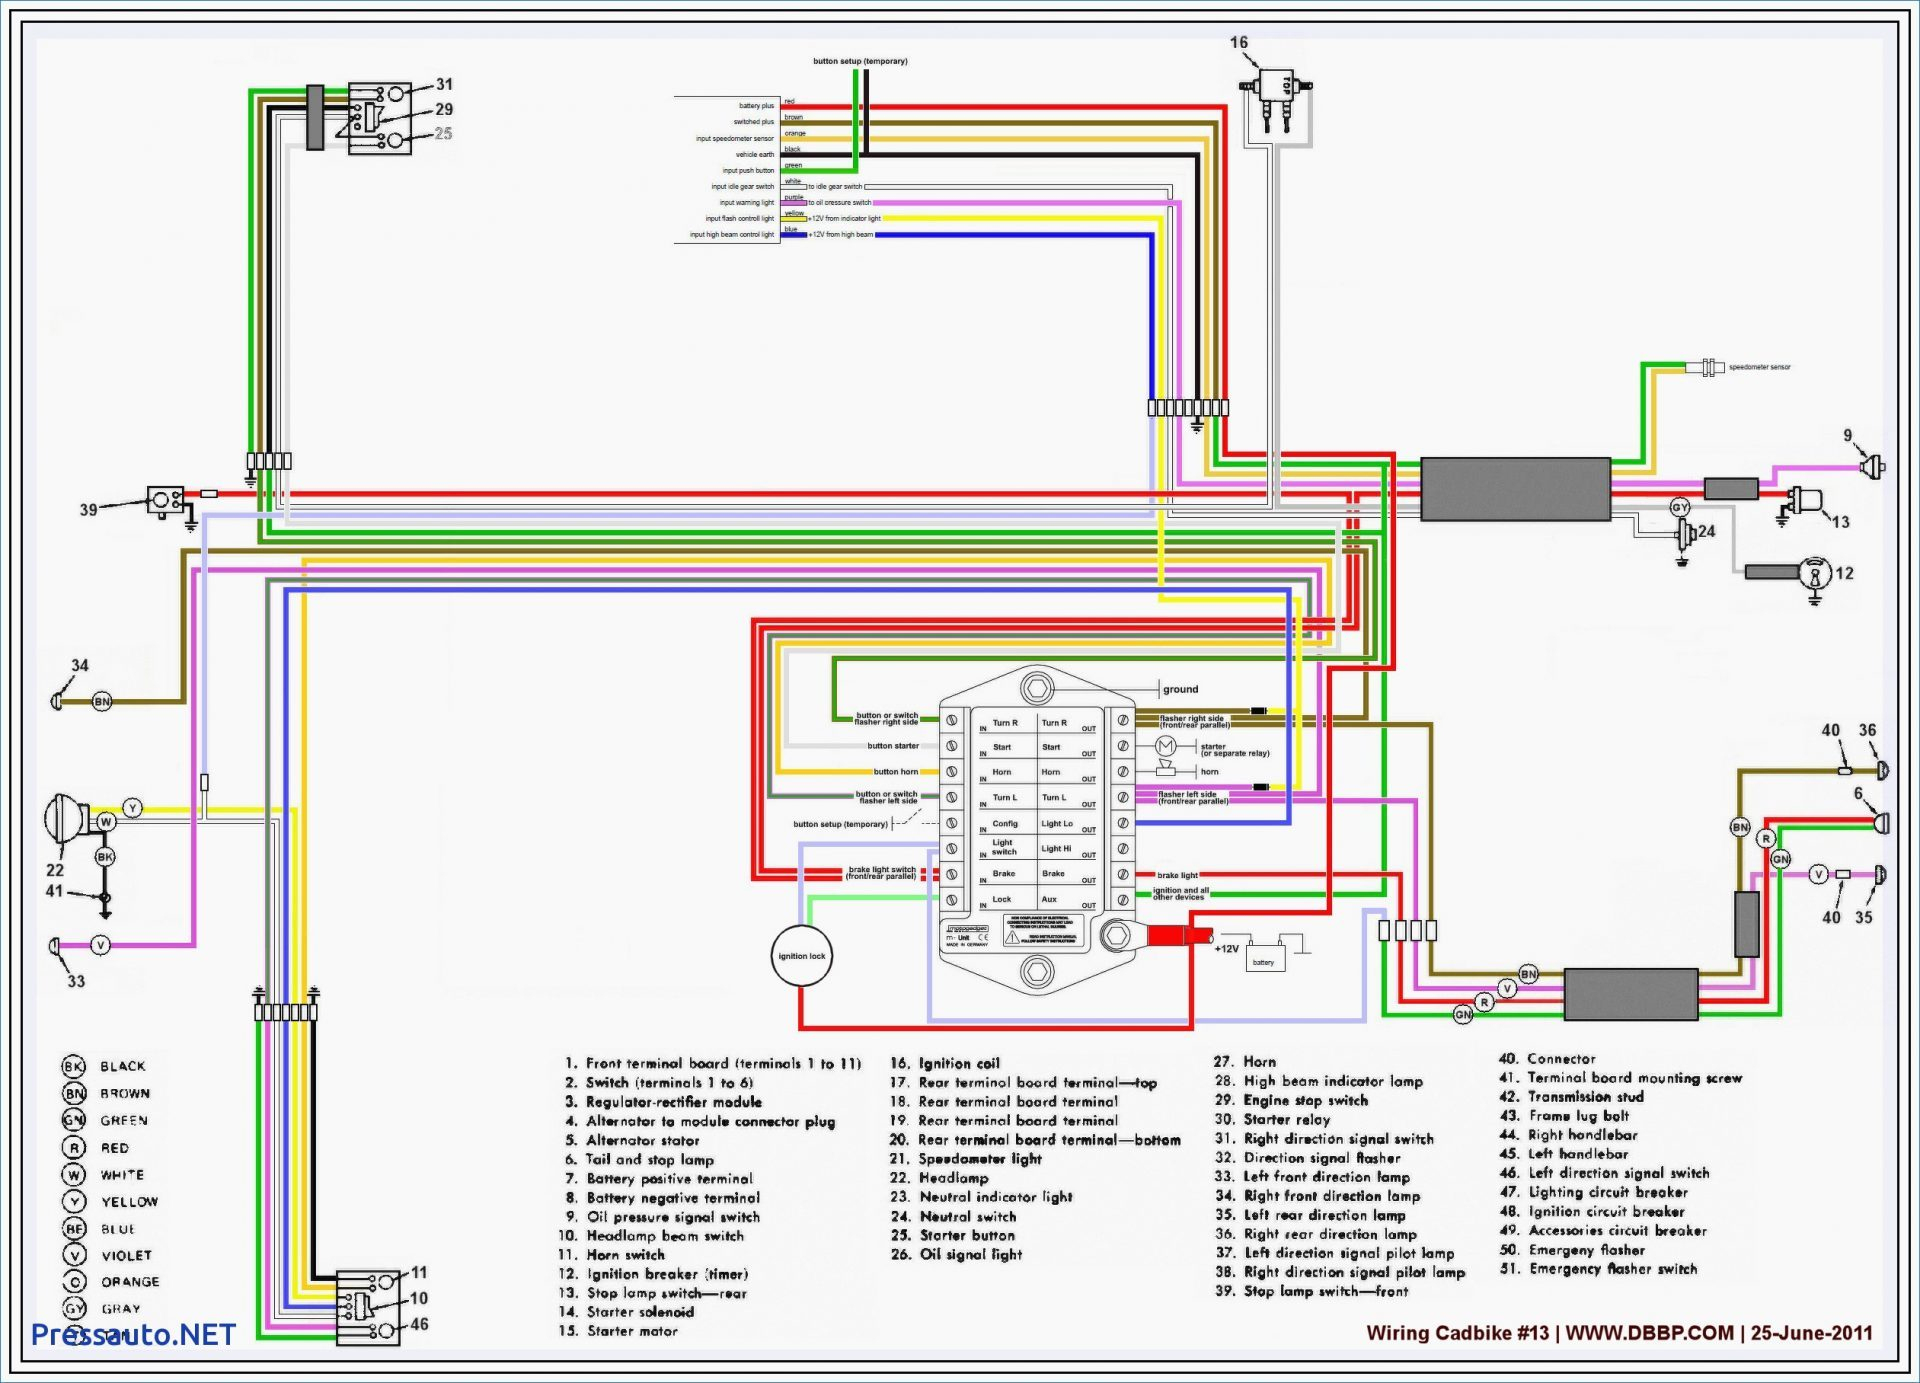 DIAGRAM] Honda Brv Wiring Diagram Book FULL Version HD Quality Diagram Book  - JSEWIRINGH.PLUSMARINE.ITPLUS Marine